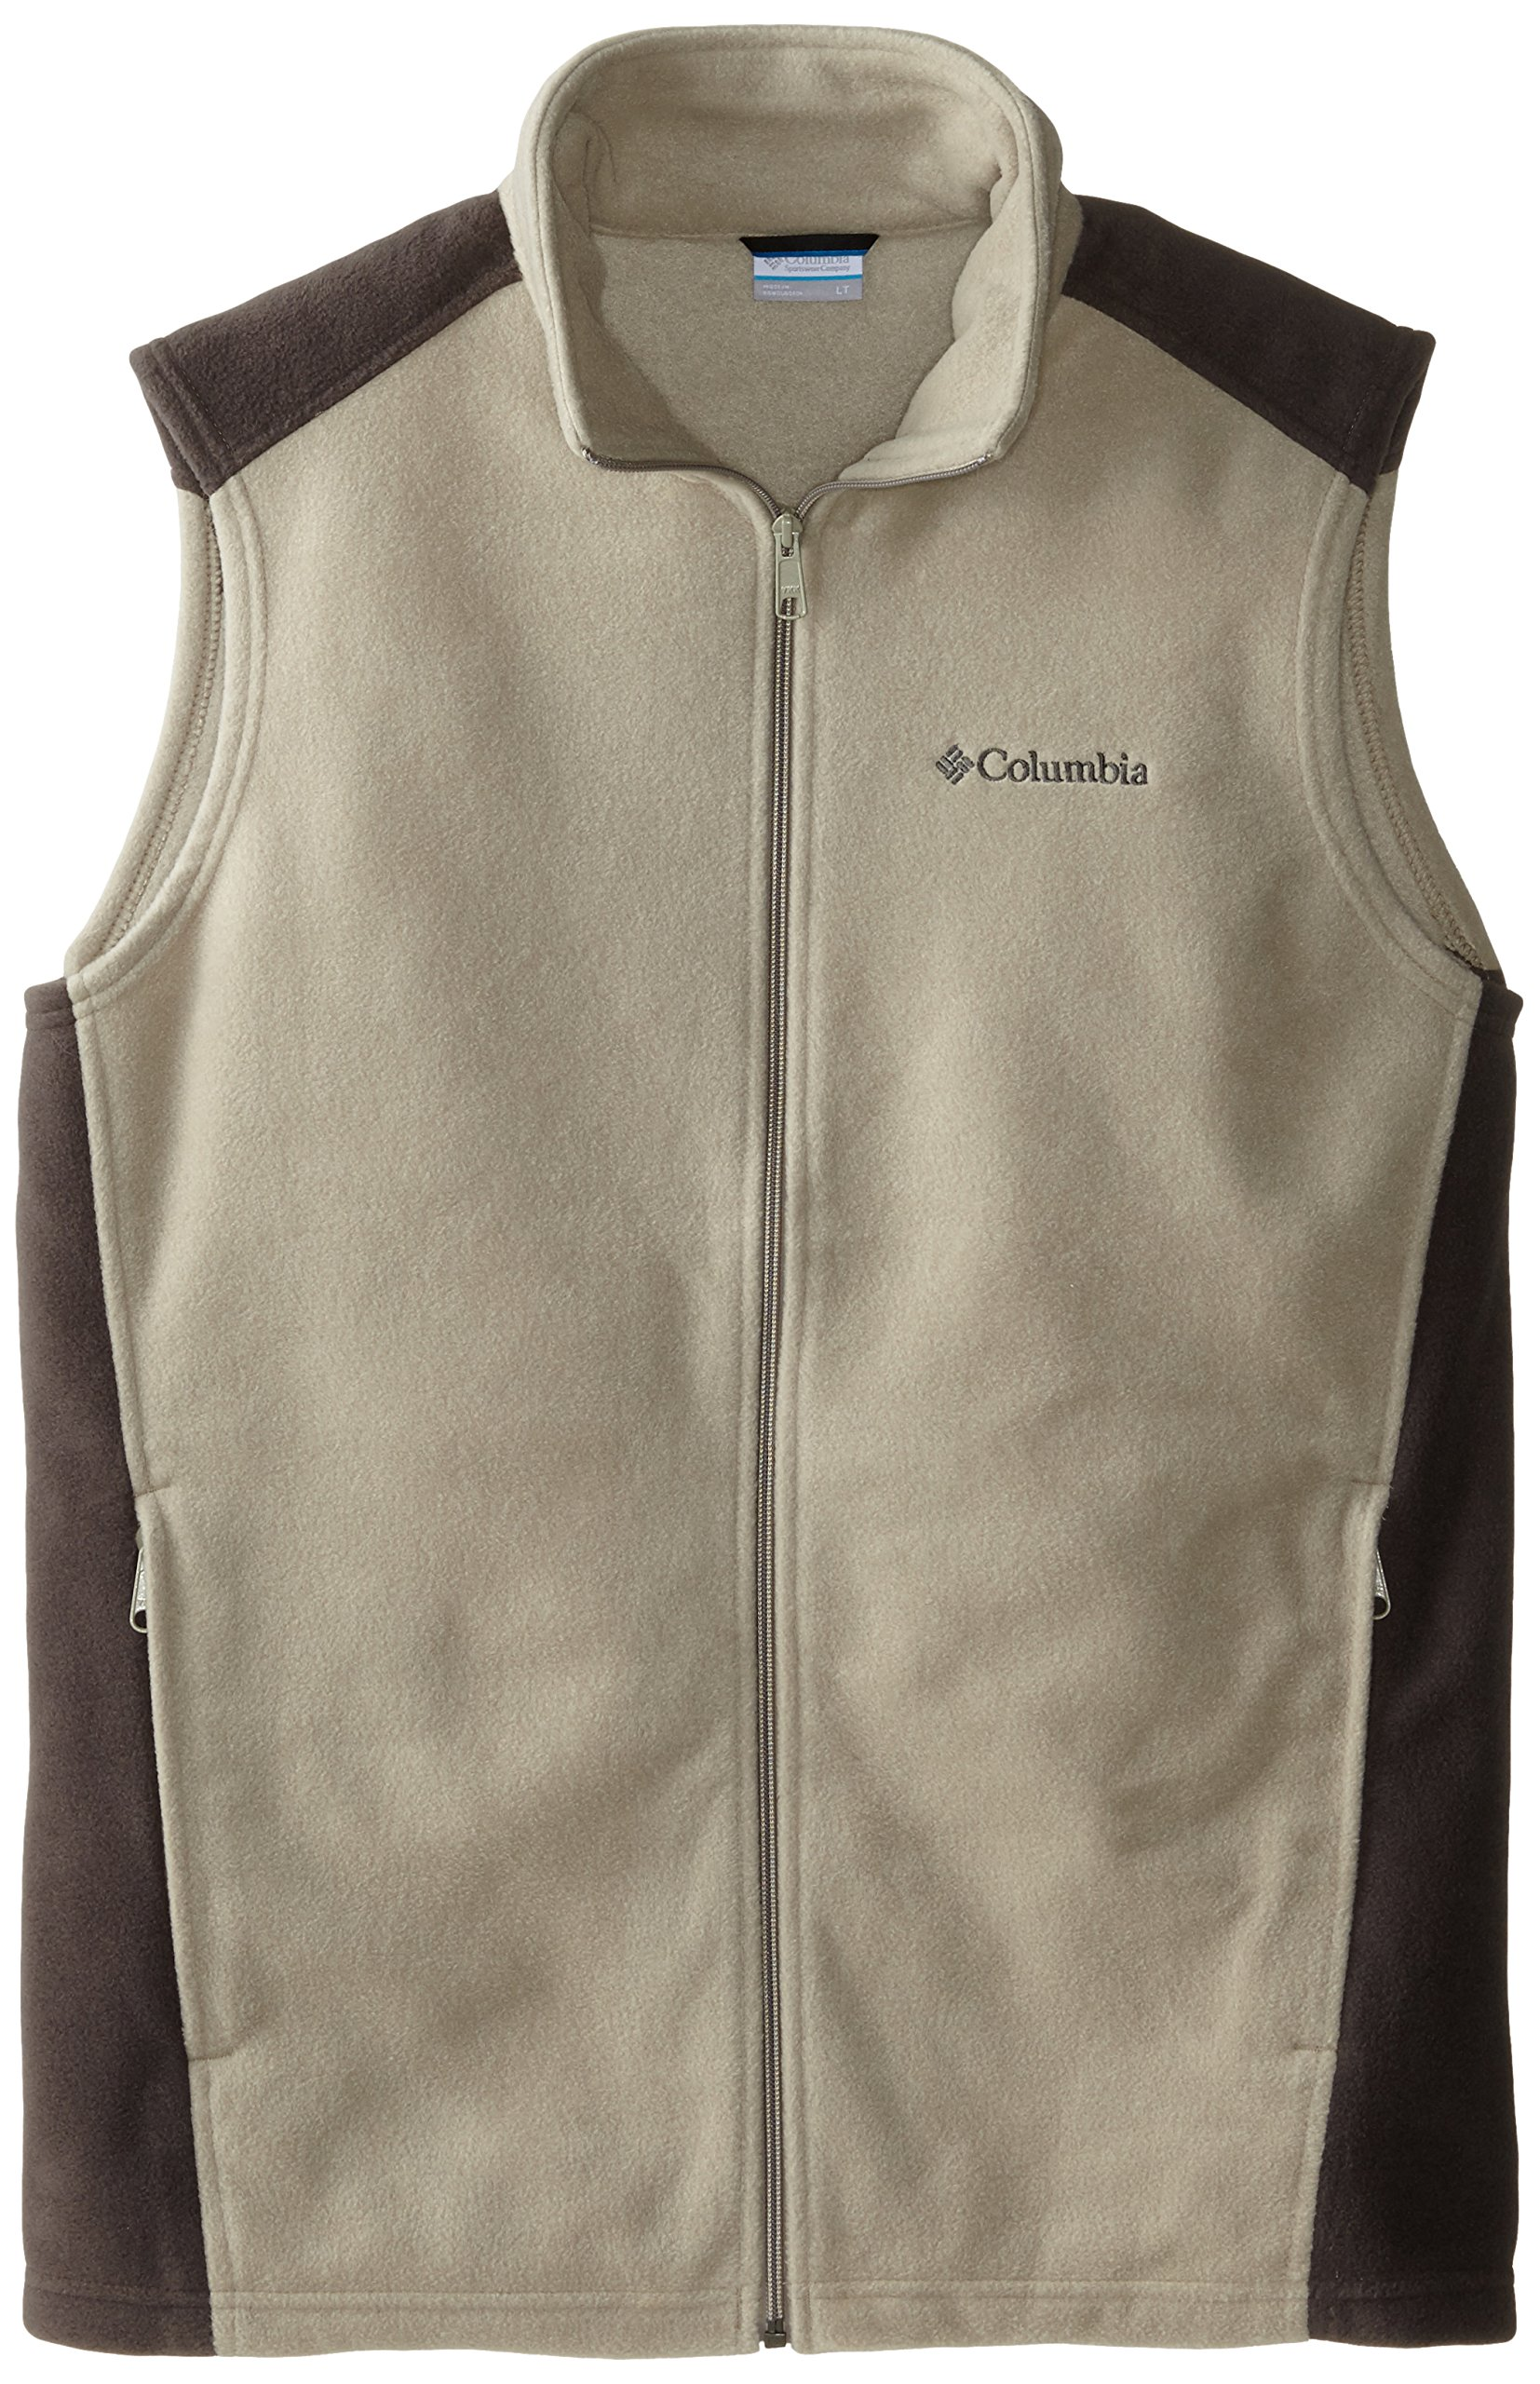 Columbia Men's Big Steens Mountain and Tall Vest, Tusk/Buffalo, 6X by Columbia